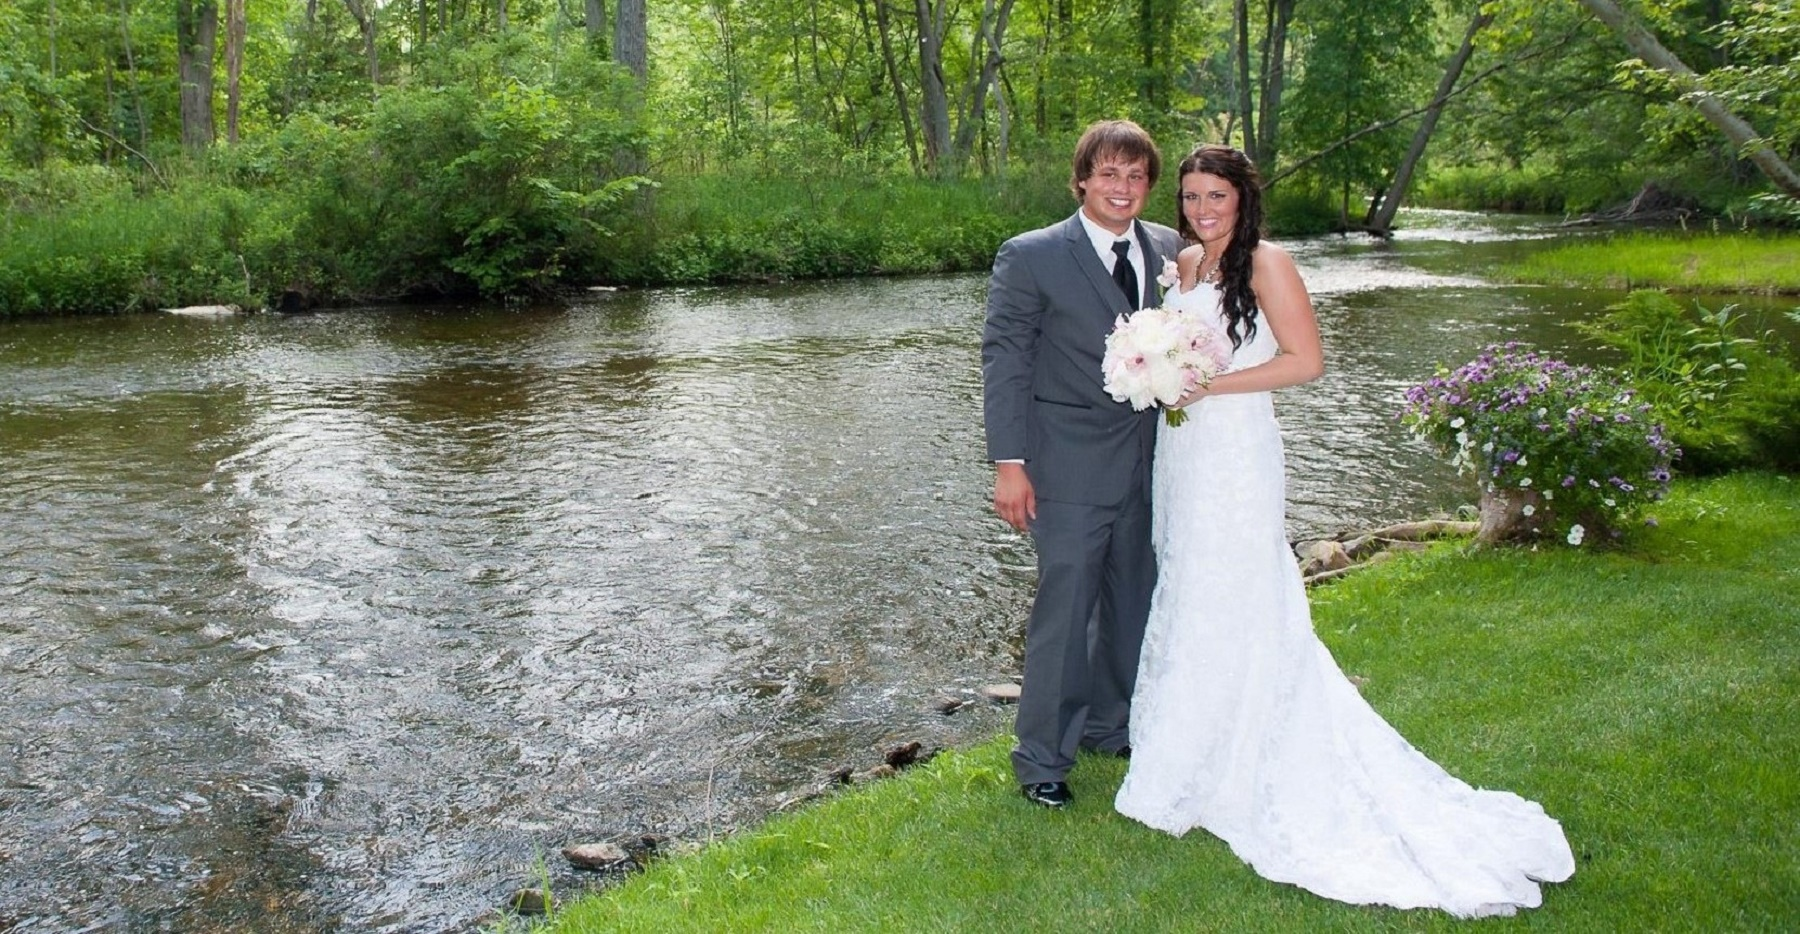 Newlywed couple by river